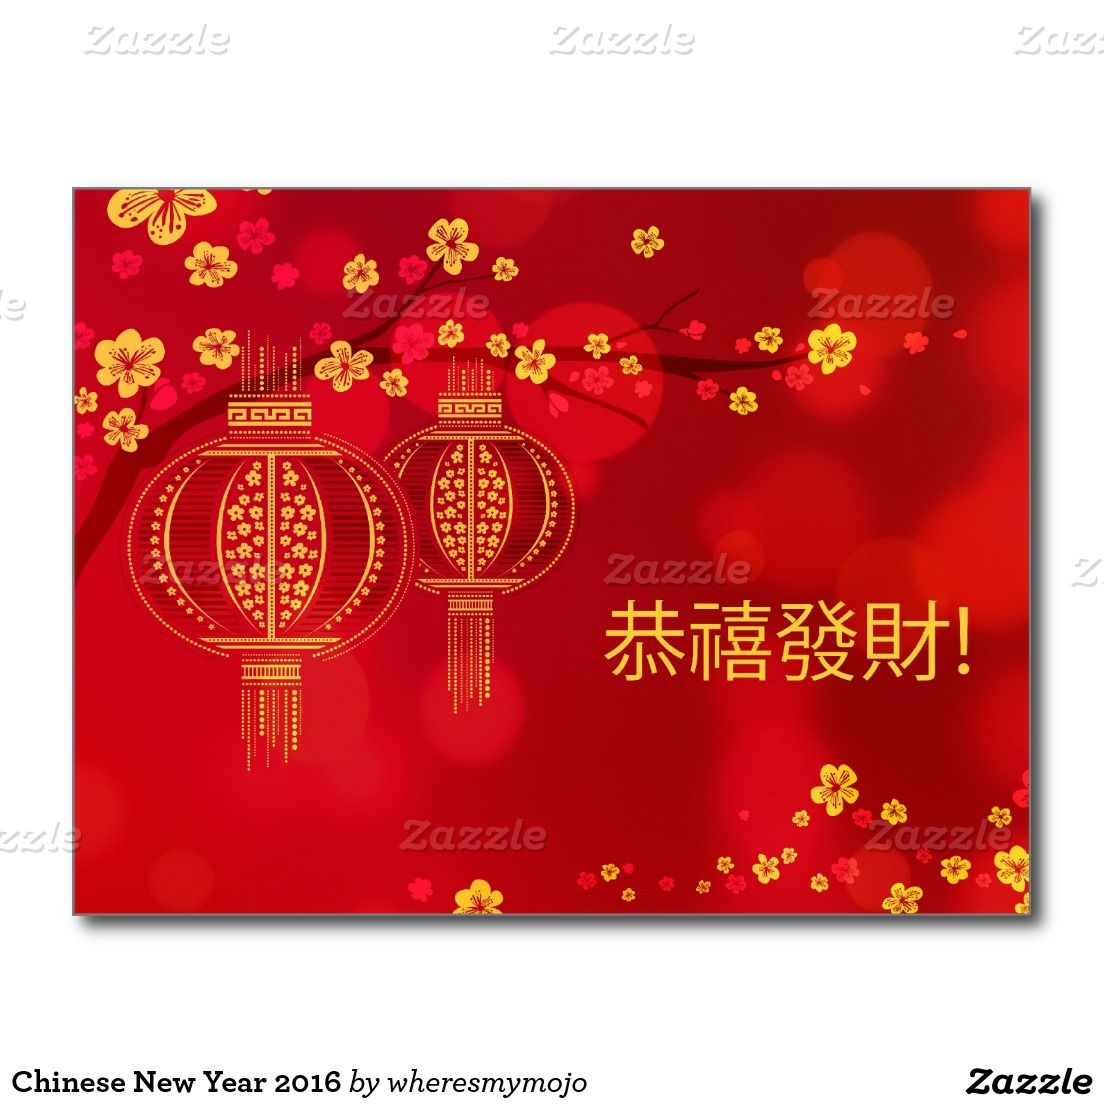 Chinese new year 2016 postcard chinese new years pinterest chinese new year 2015 card greeting for 2015 with text gong xi fa cai meaning wishing you prosperity in the coming year the lunar year of the yin wood kristyandbryce Choice Image